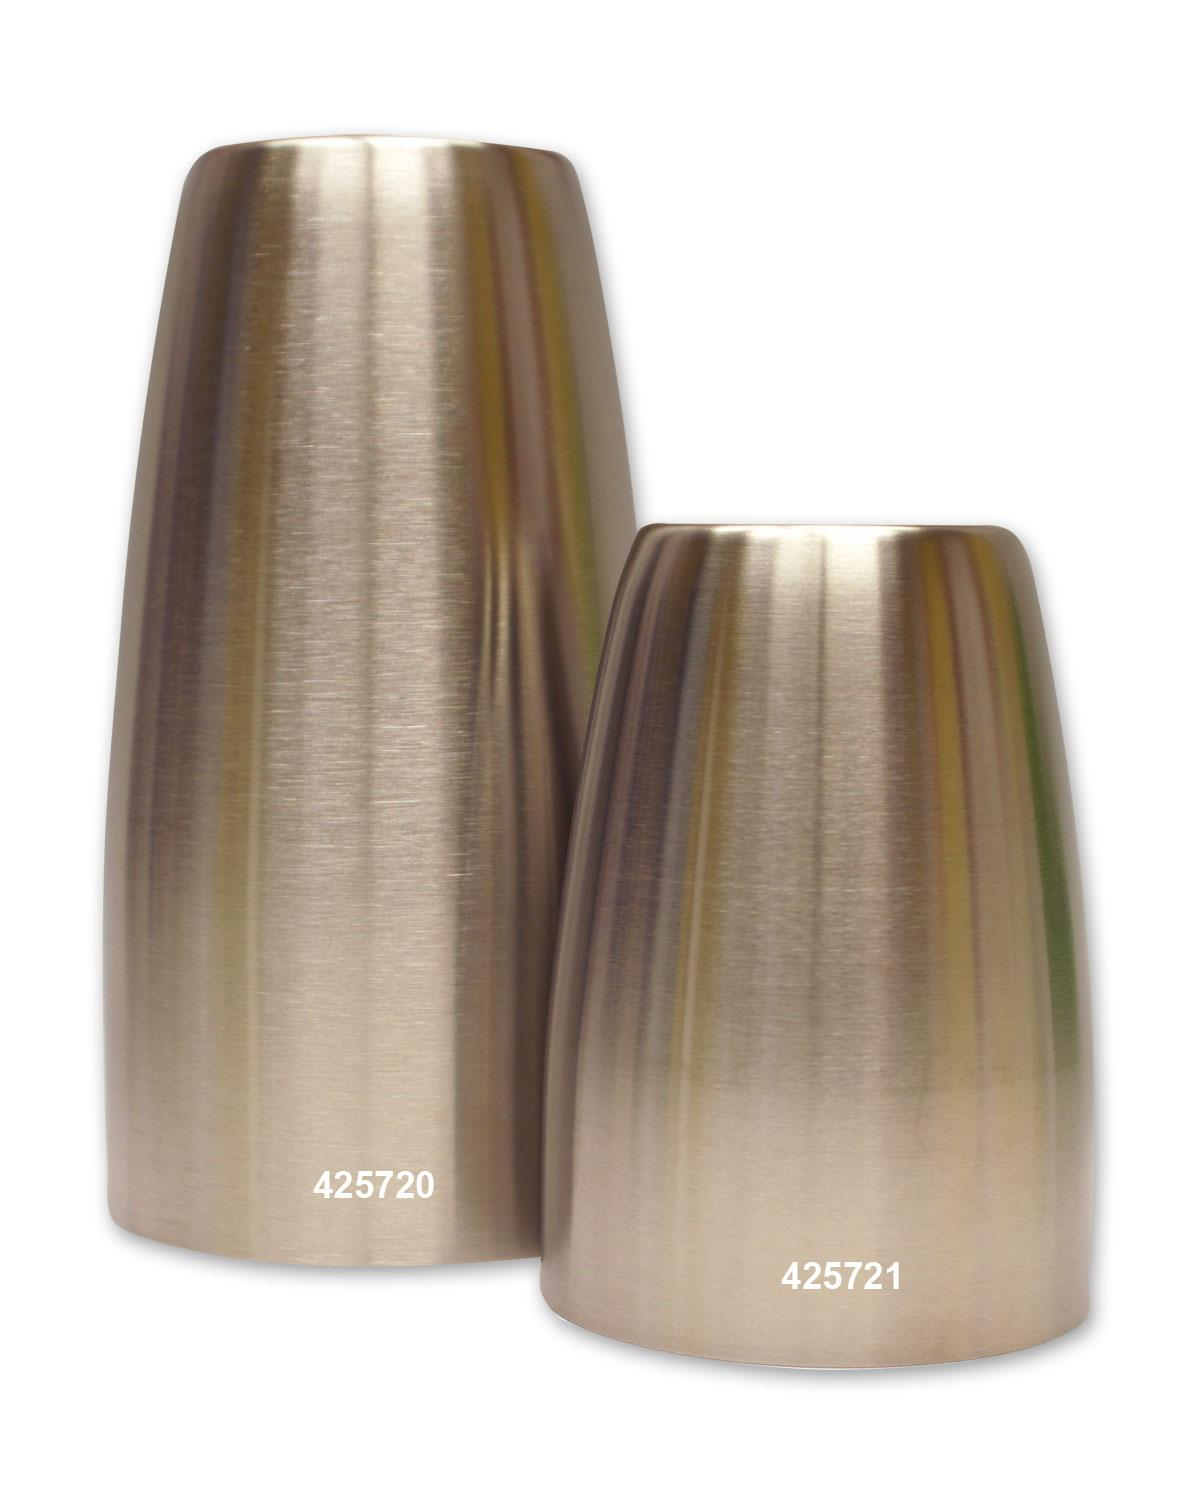 Stainless Steel Floral Vase Formers - 2 Piece Set